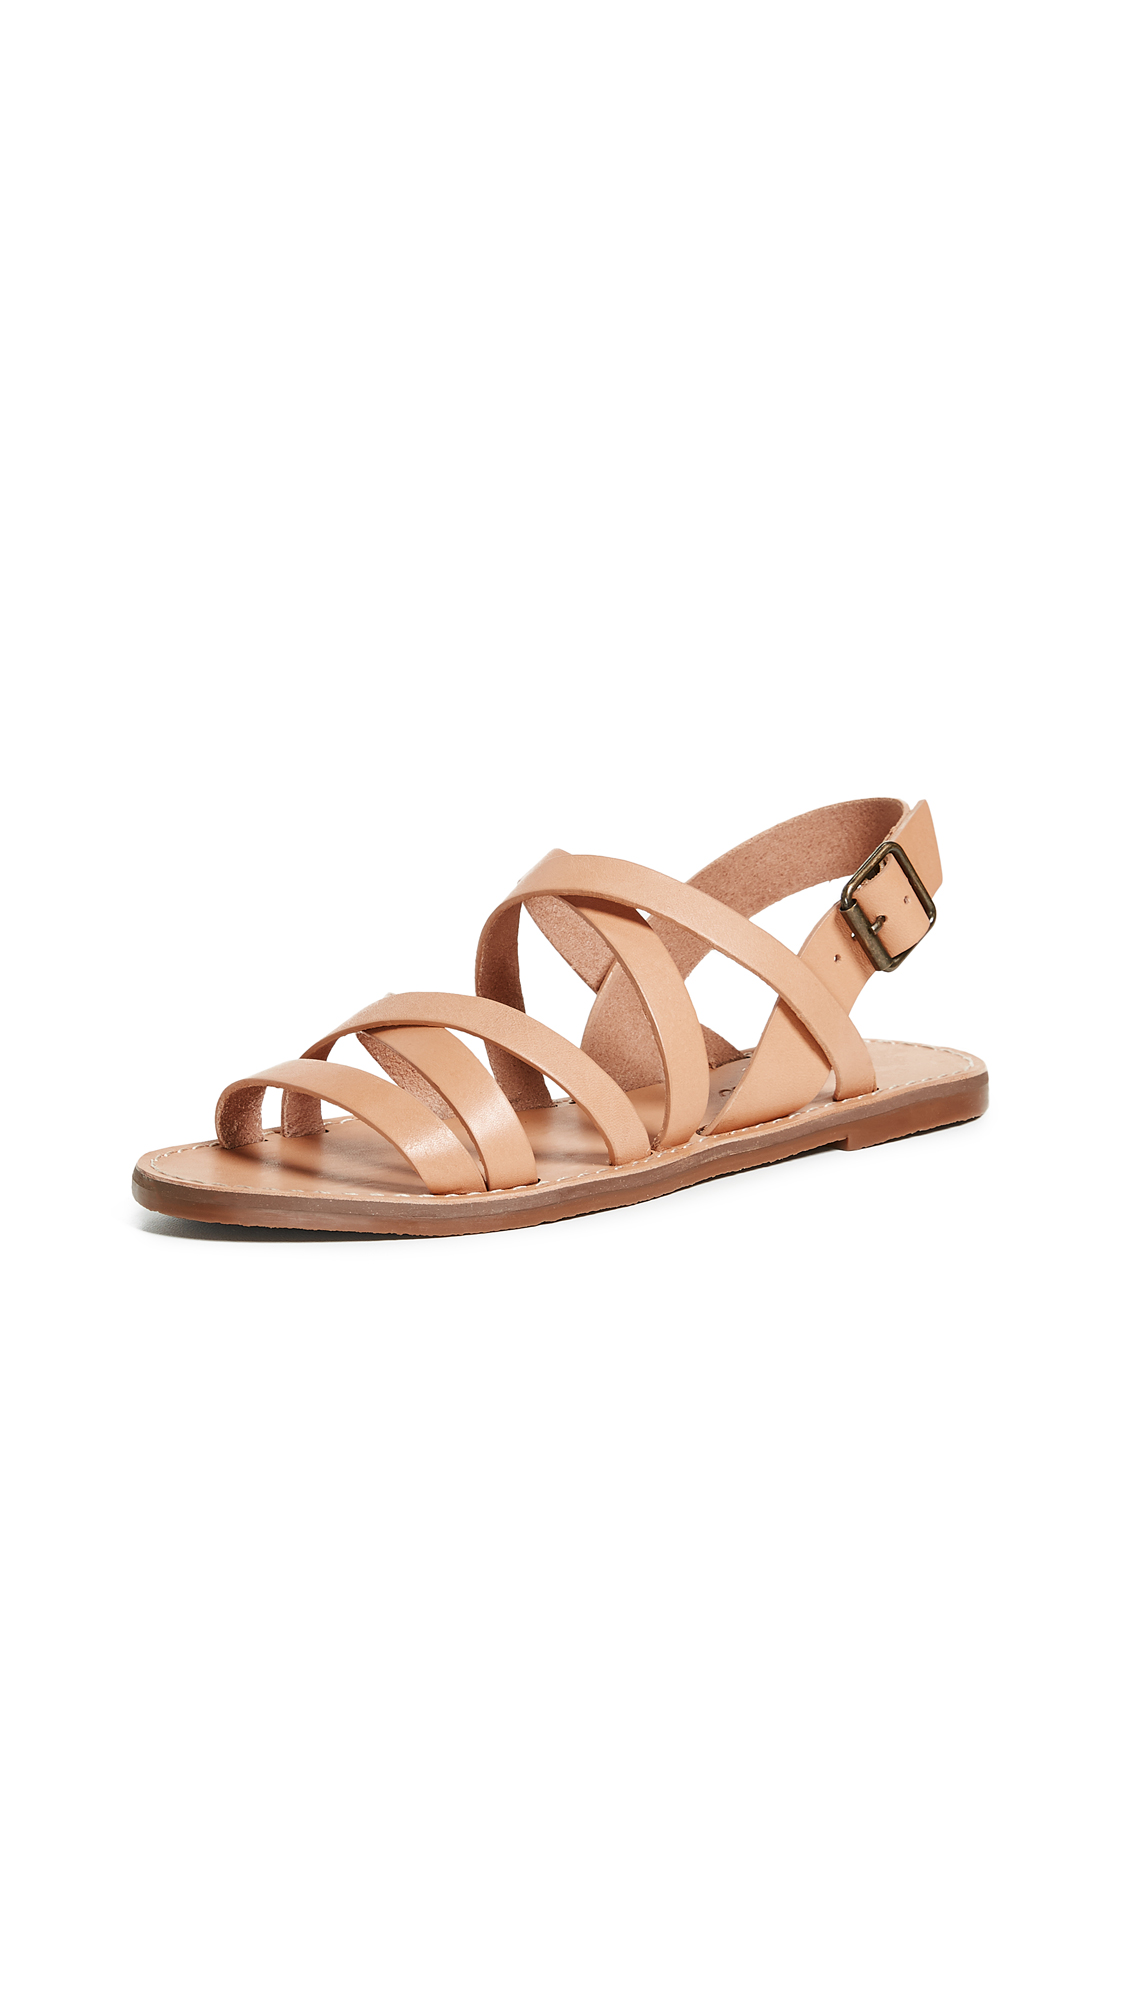 Madewell Outstock Multi Strap Sandals